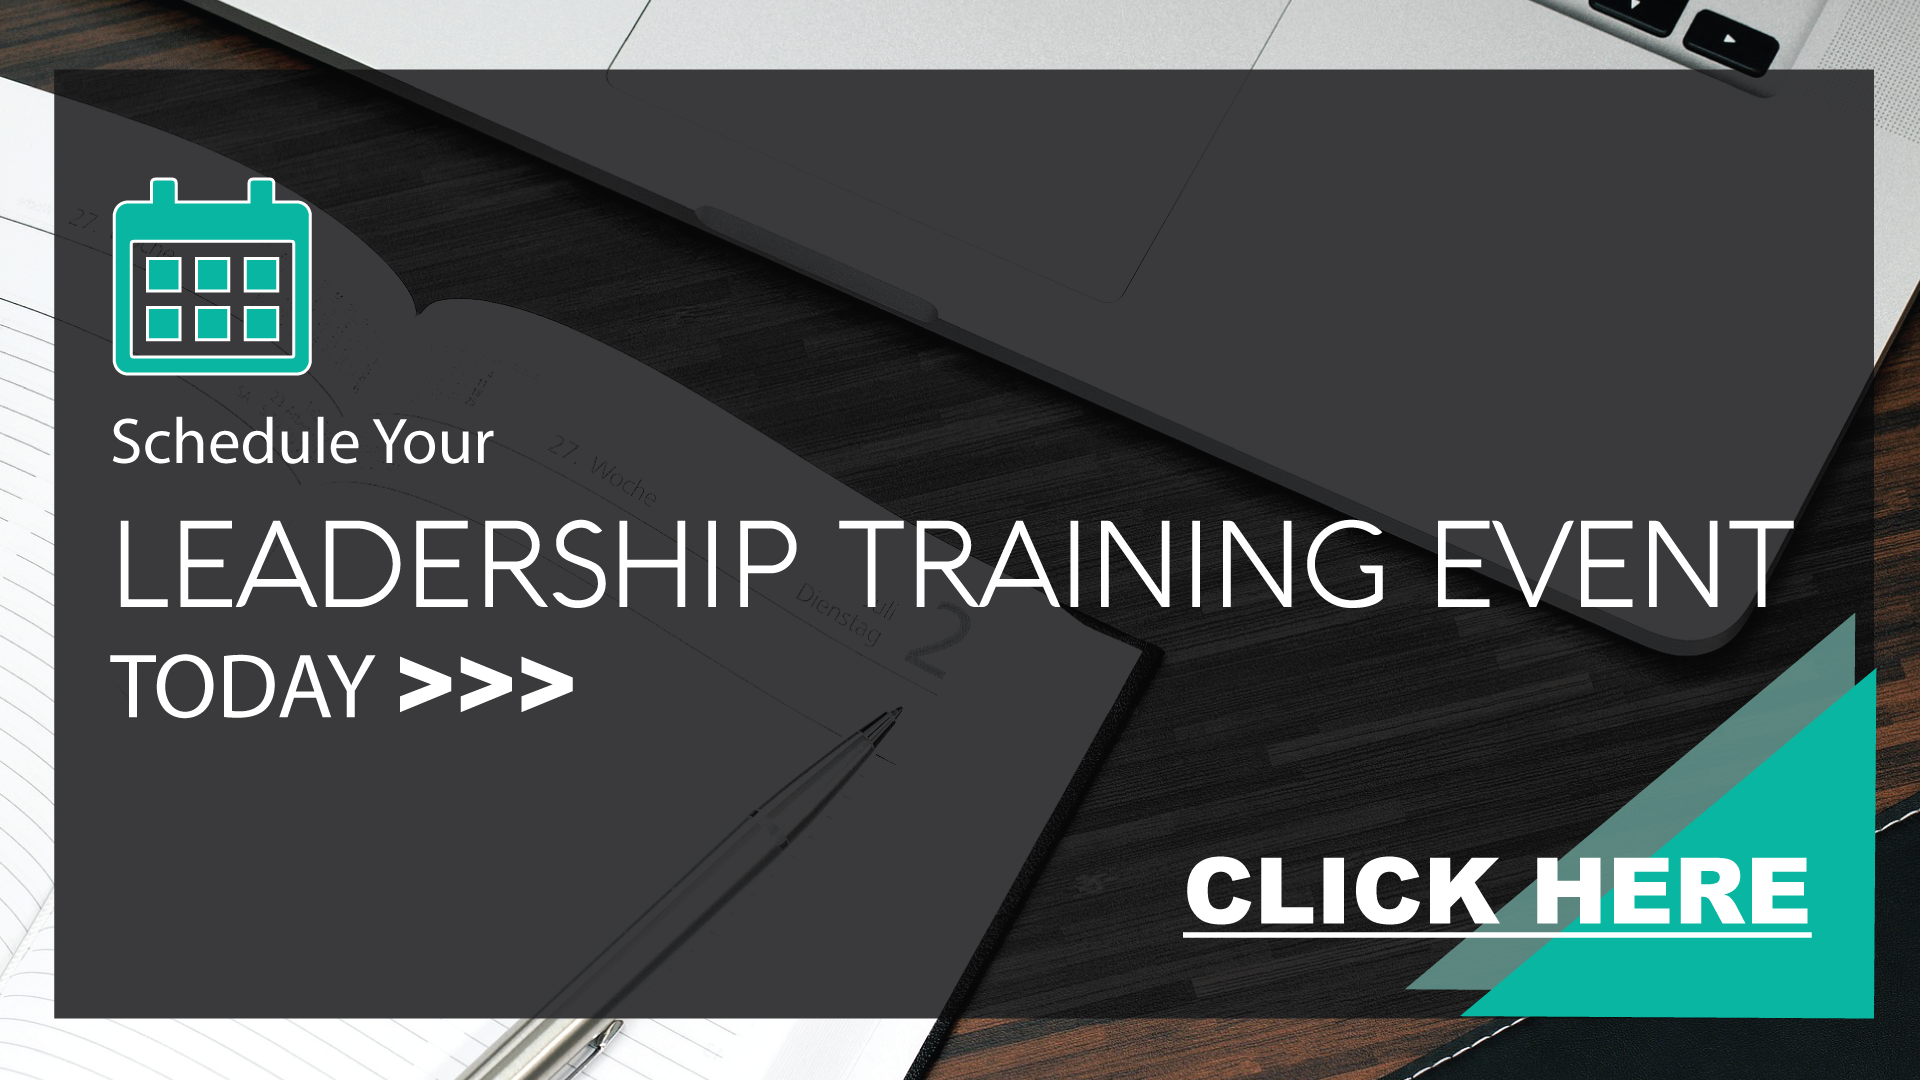 Click here to schedule your leadership training event today!